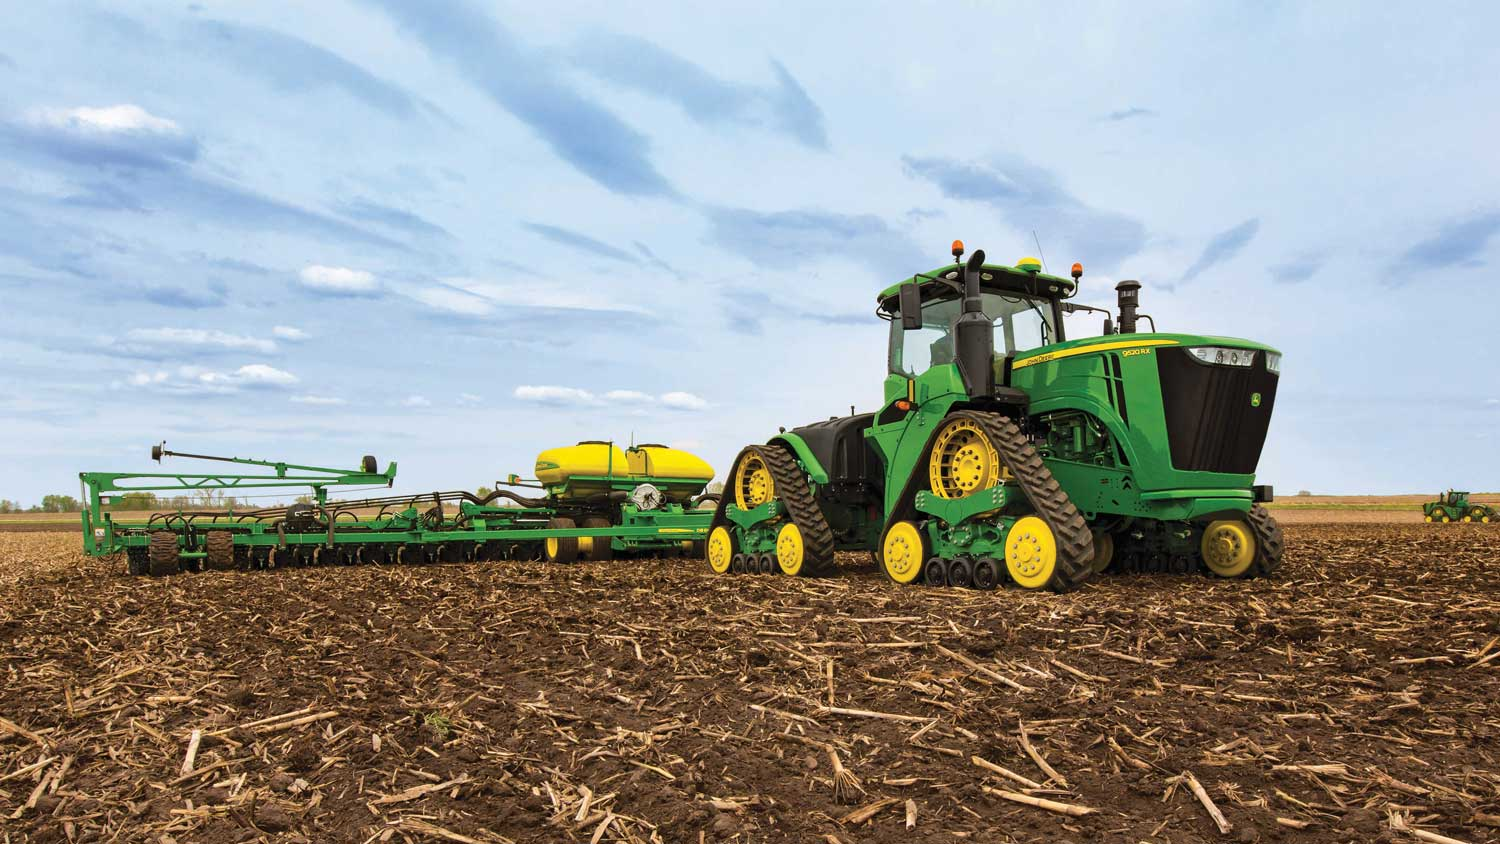 Deere 9rx Tractors Recognized For Design Innovation